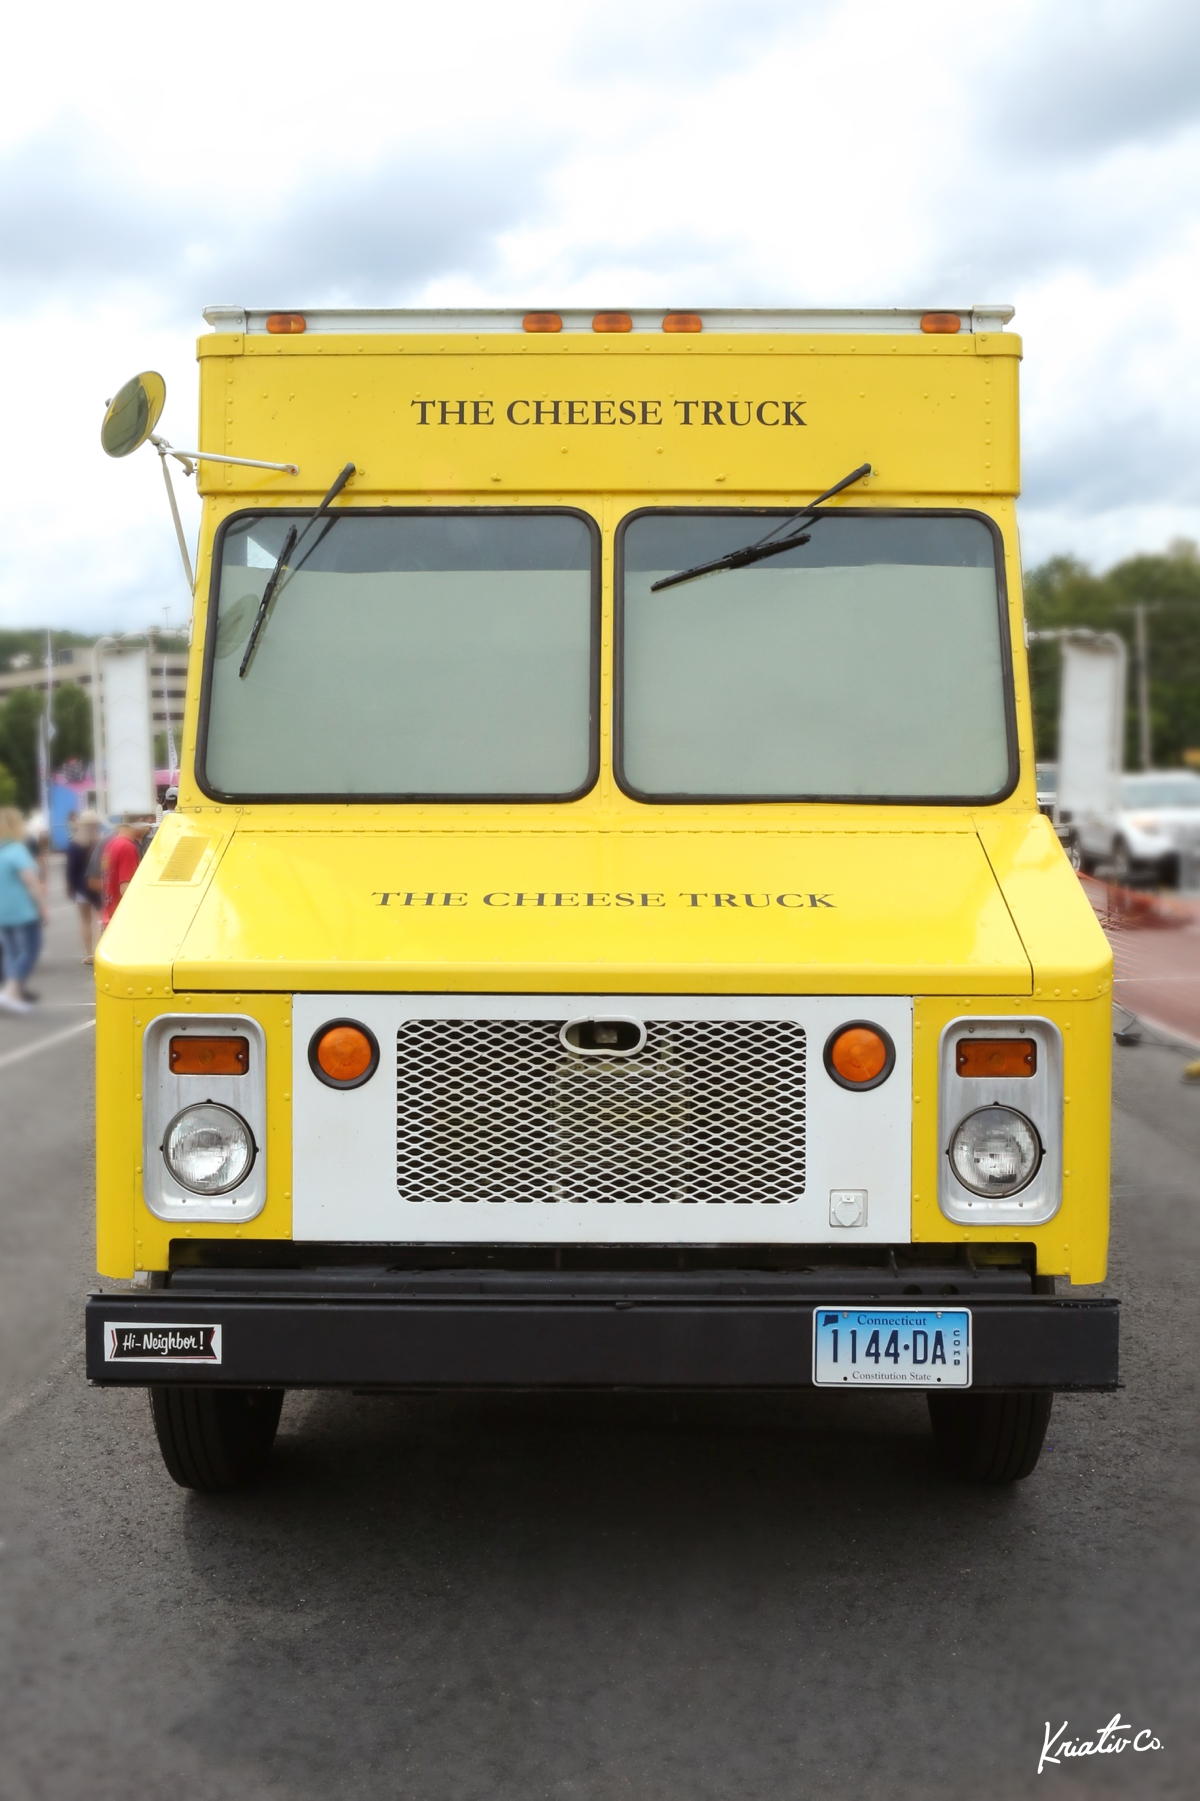 Kriativ_Co_Food_Commercial_Photography_CheeseTruck_Blog_14.jpg